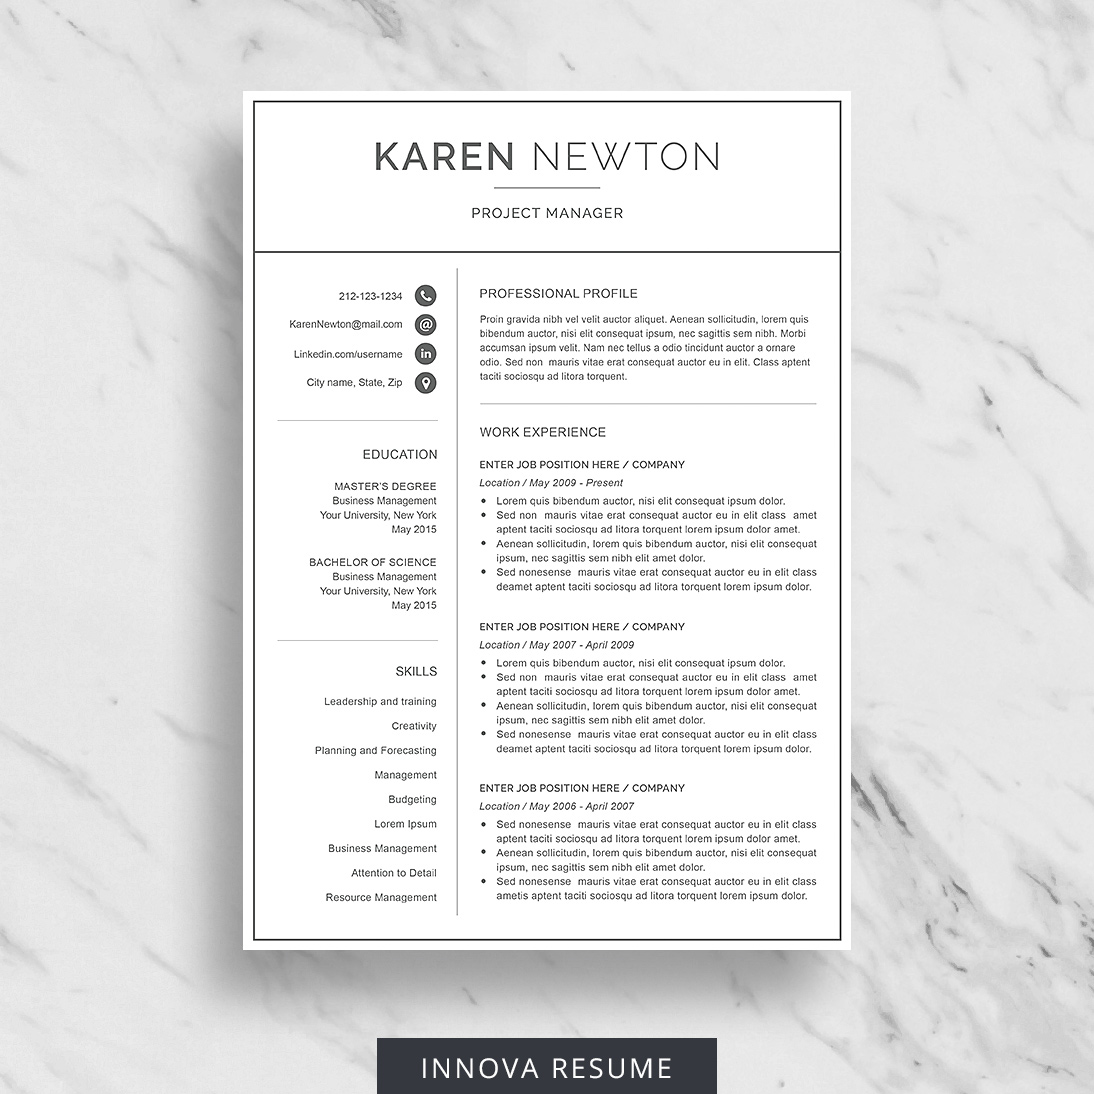 resume layout education